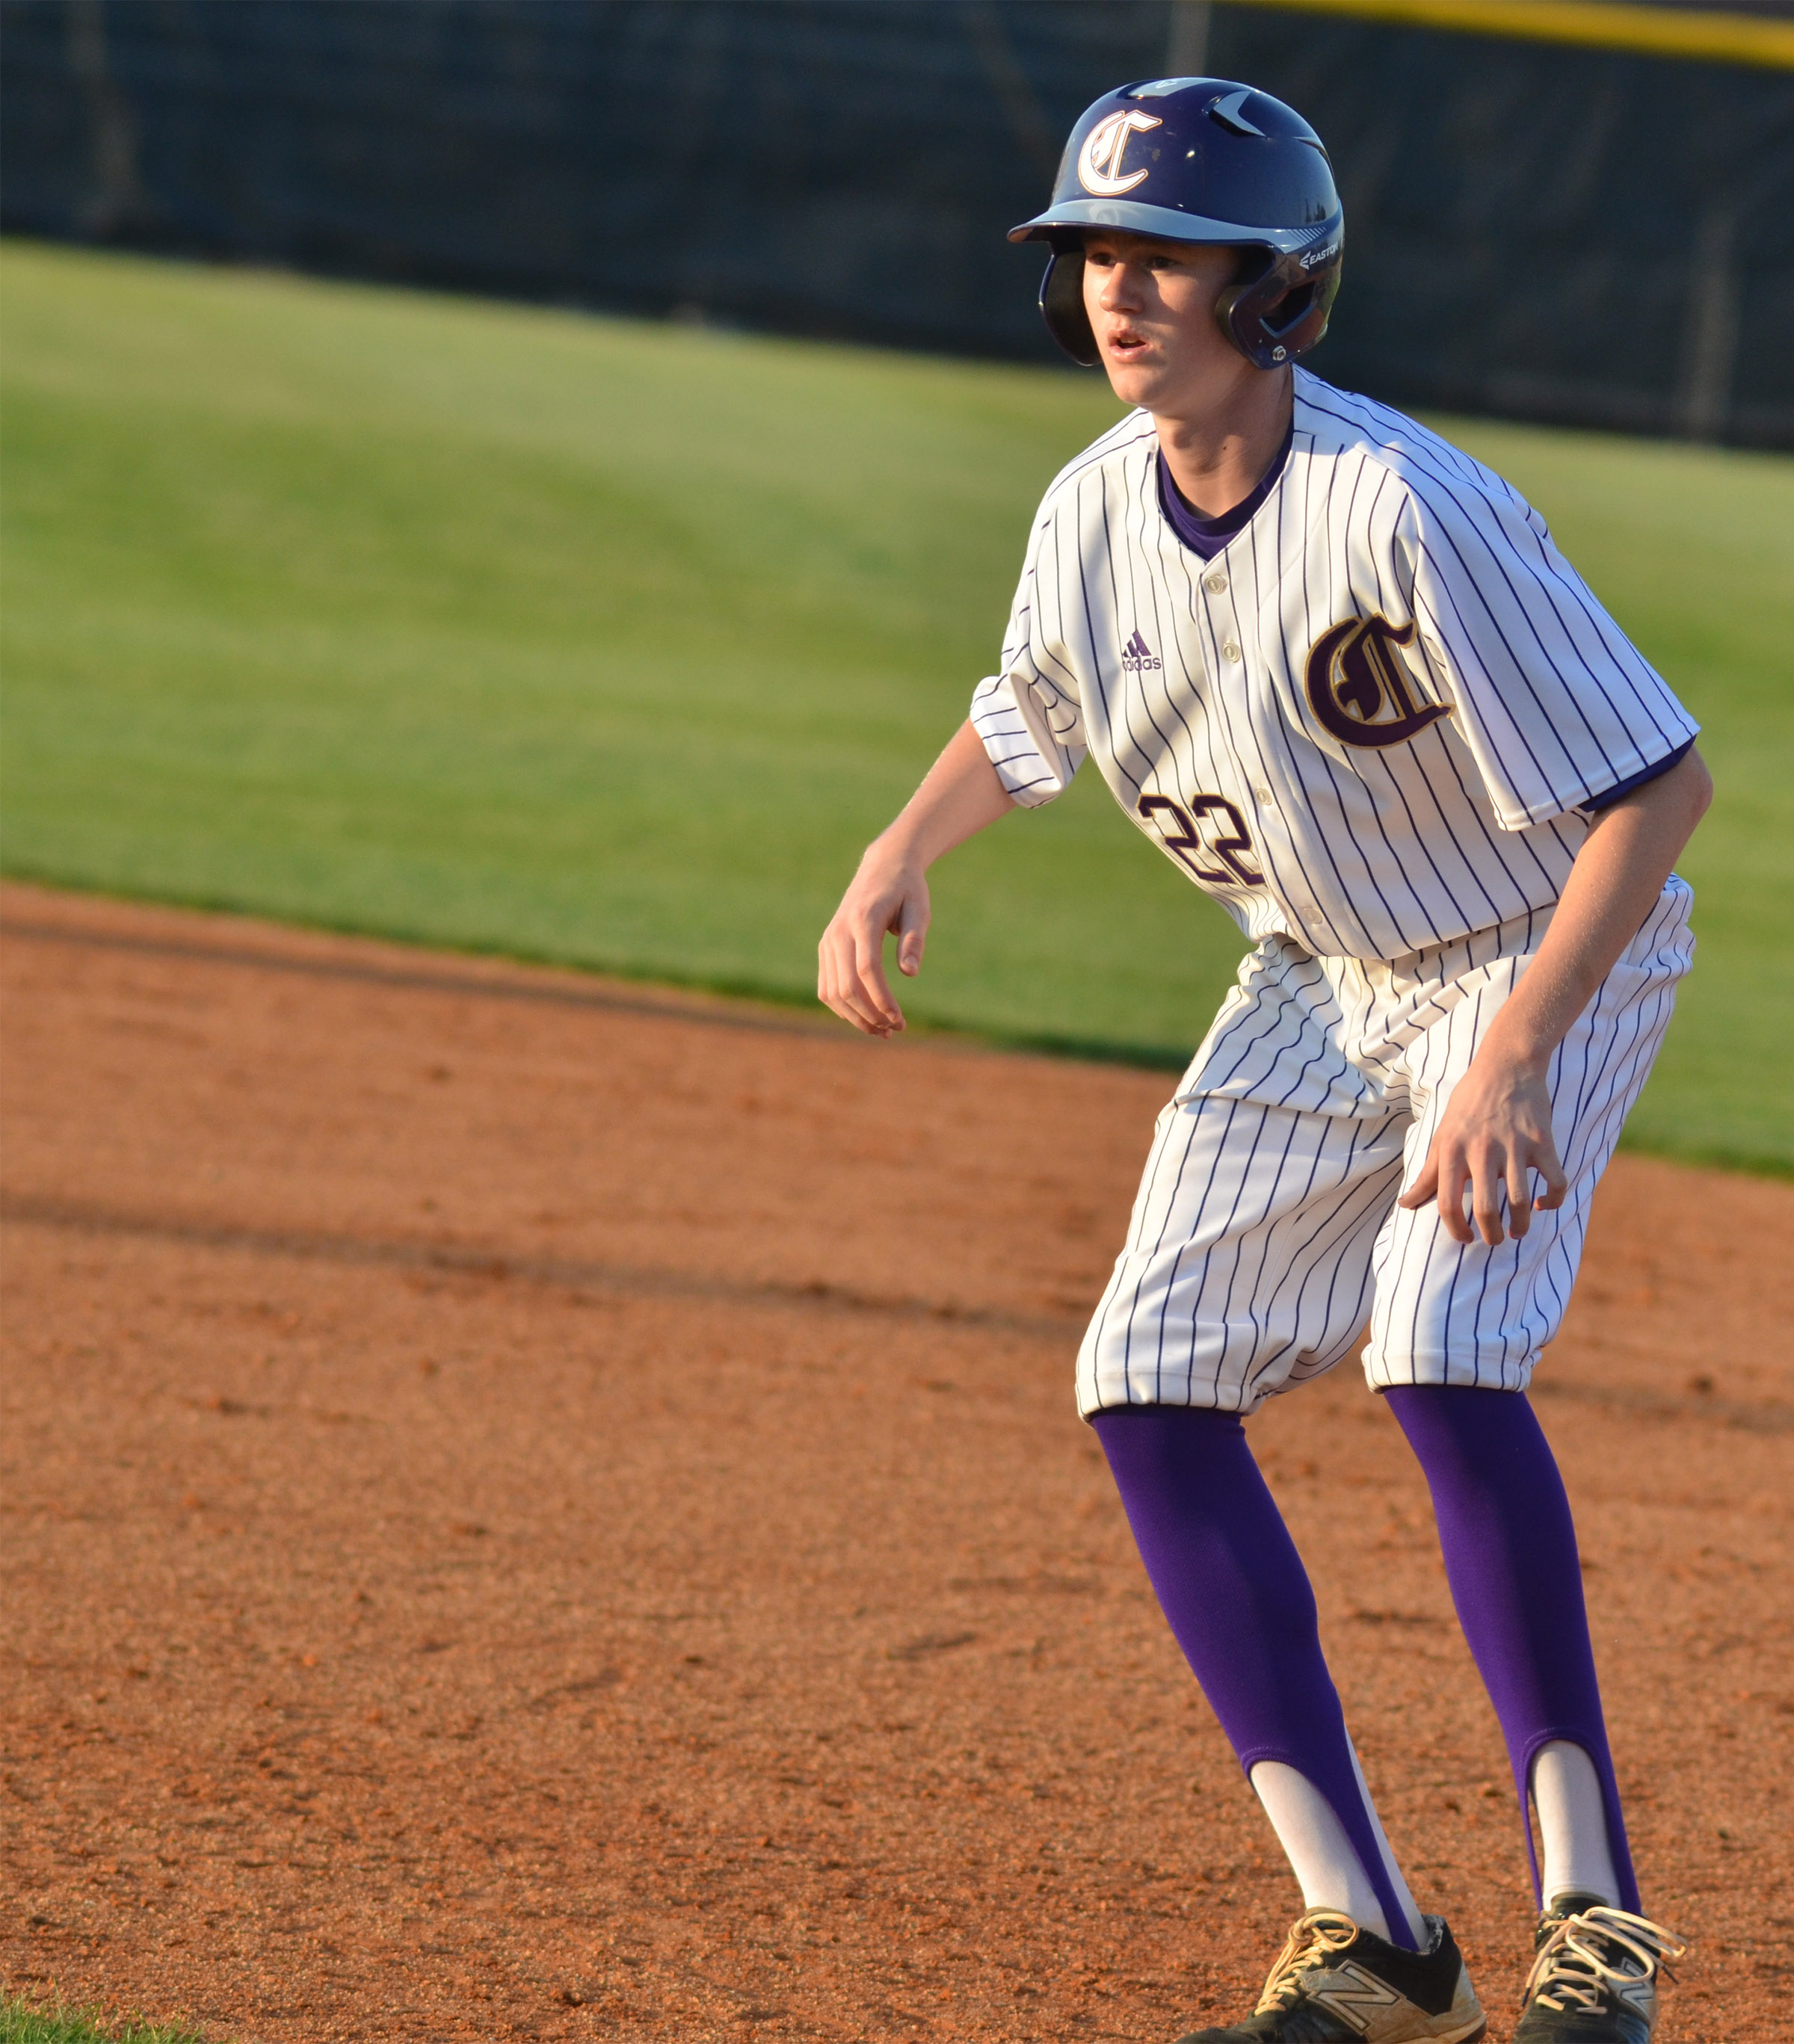 Campbellsville Middle School eighth-grader Tristin Faulkner looks to head to second.